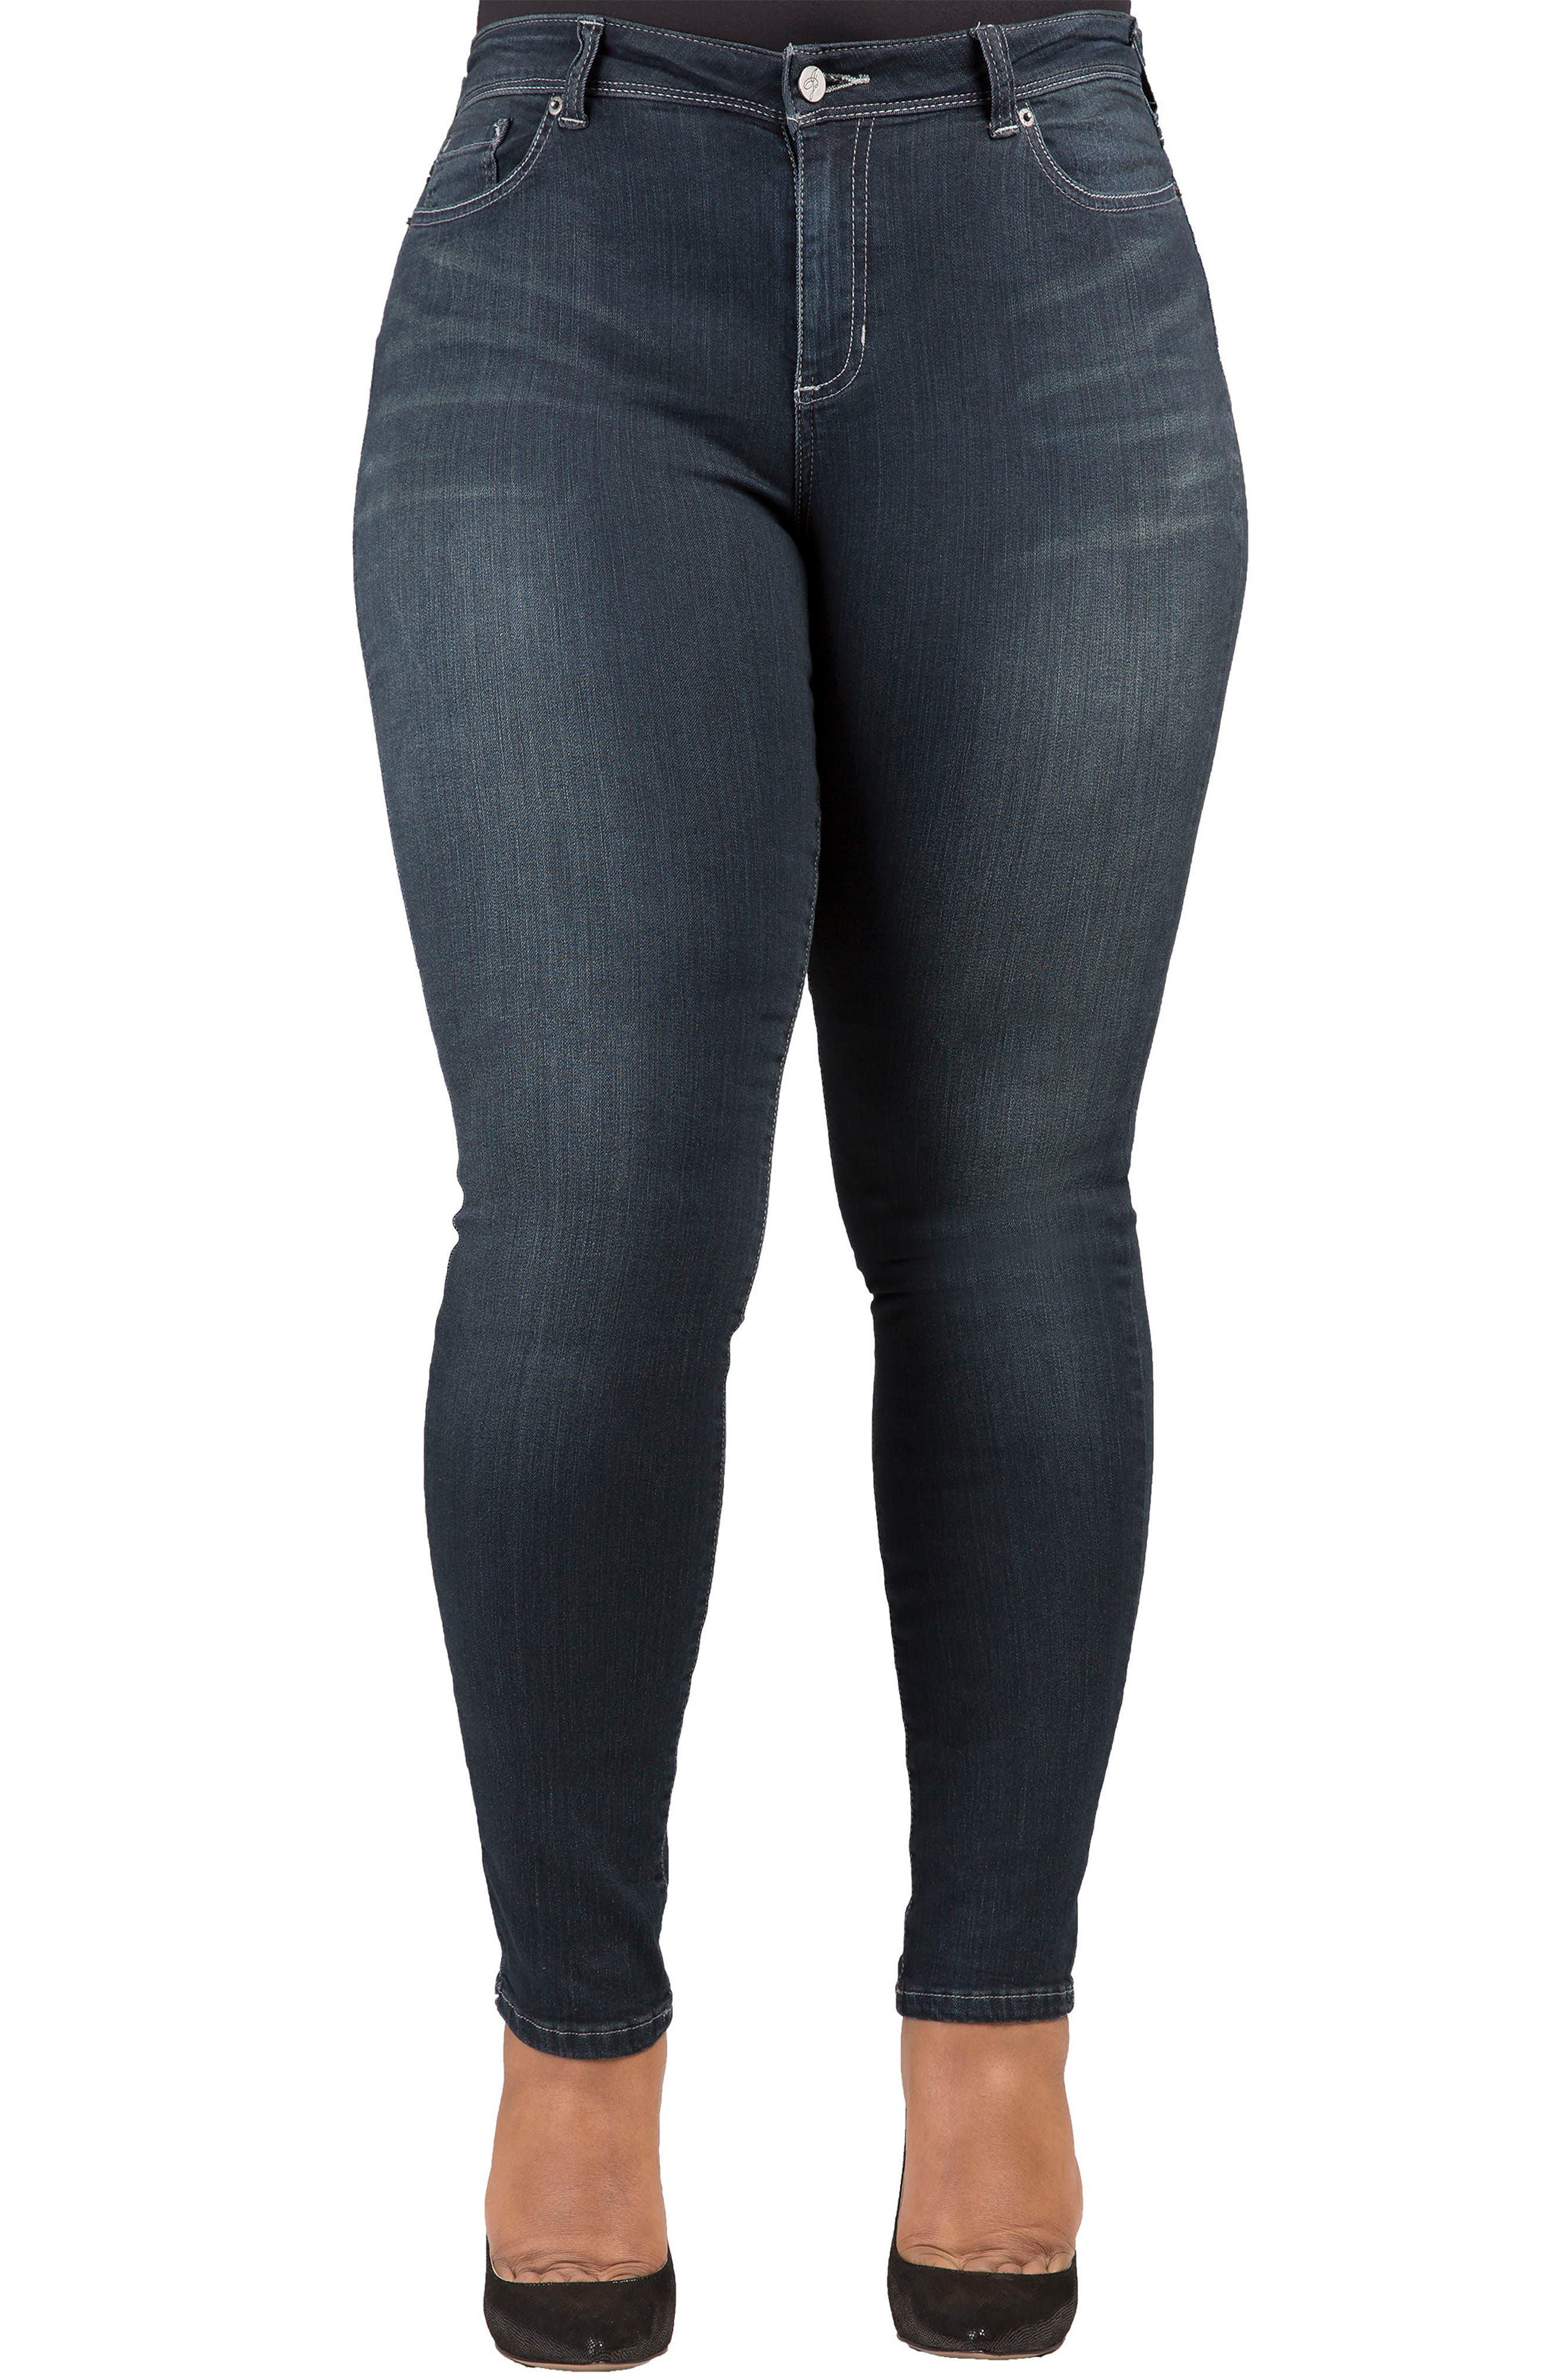 POETIC JUSTICE 'Maya' Stretch Skinny Jeans, Main, color, 1464KINGSC